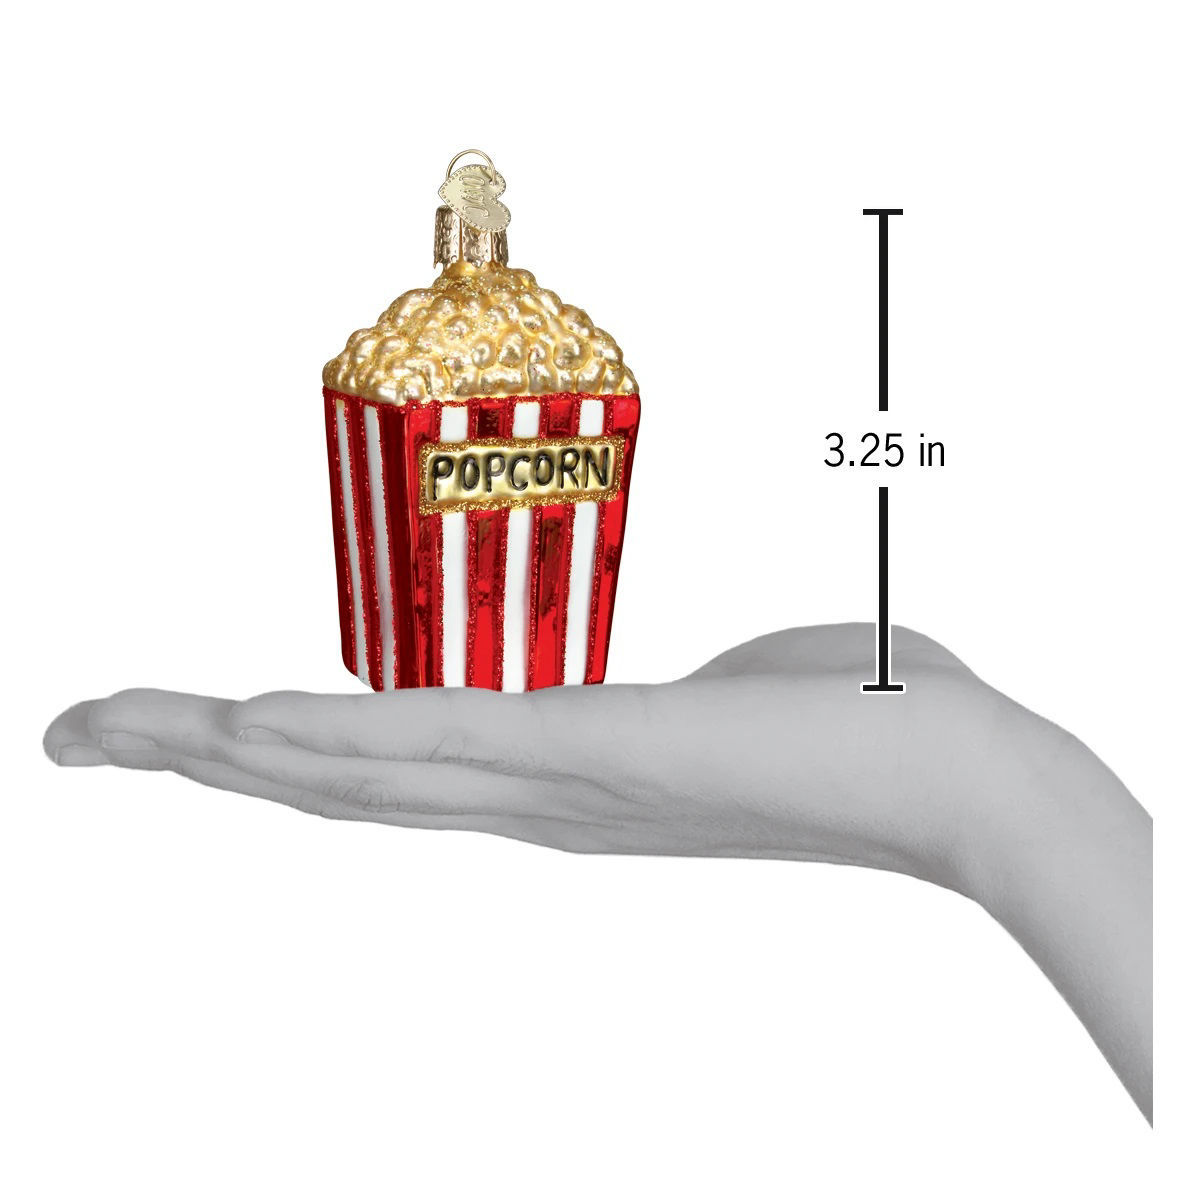 Popcorn Ornament by Old World Christmas